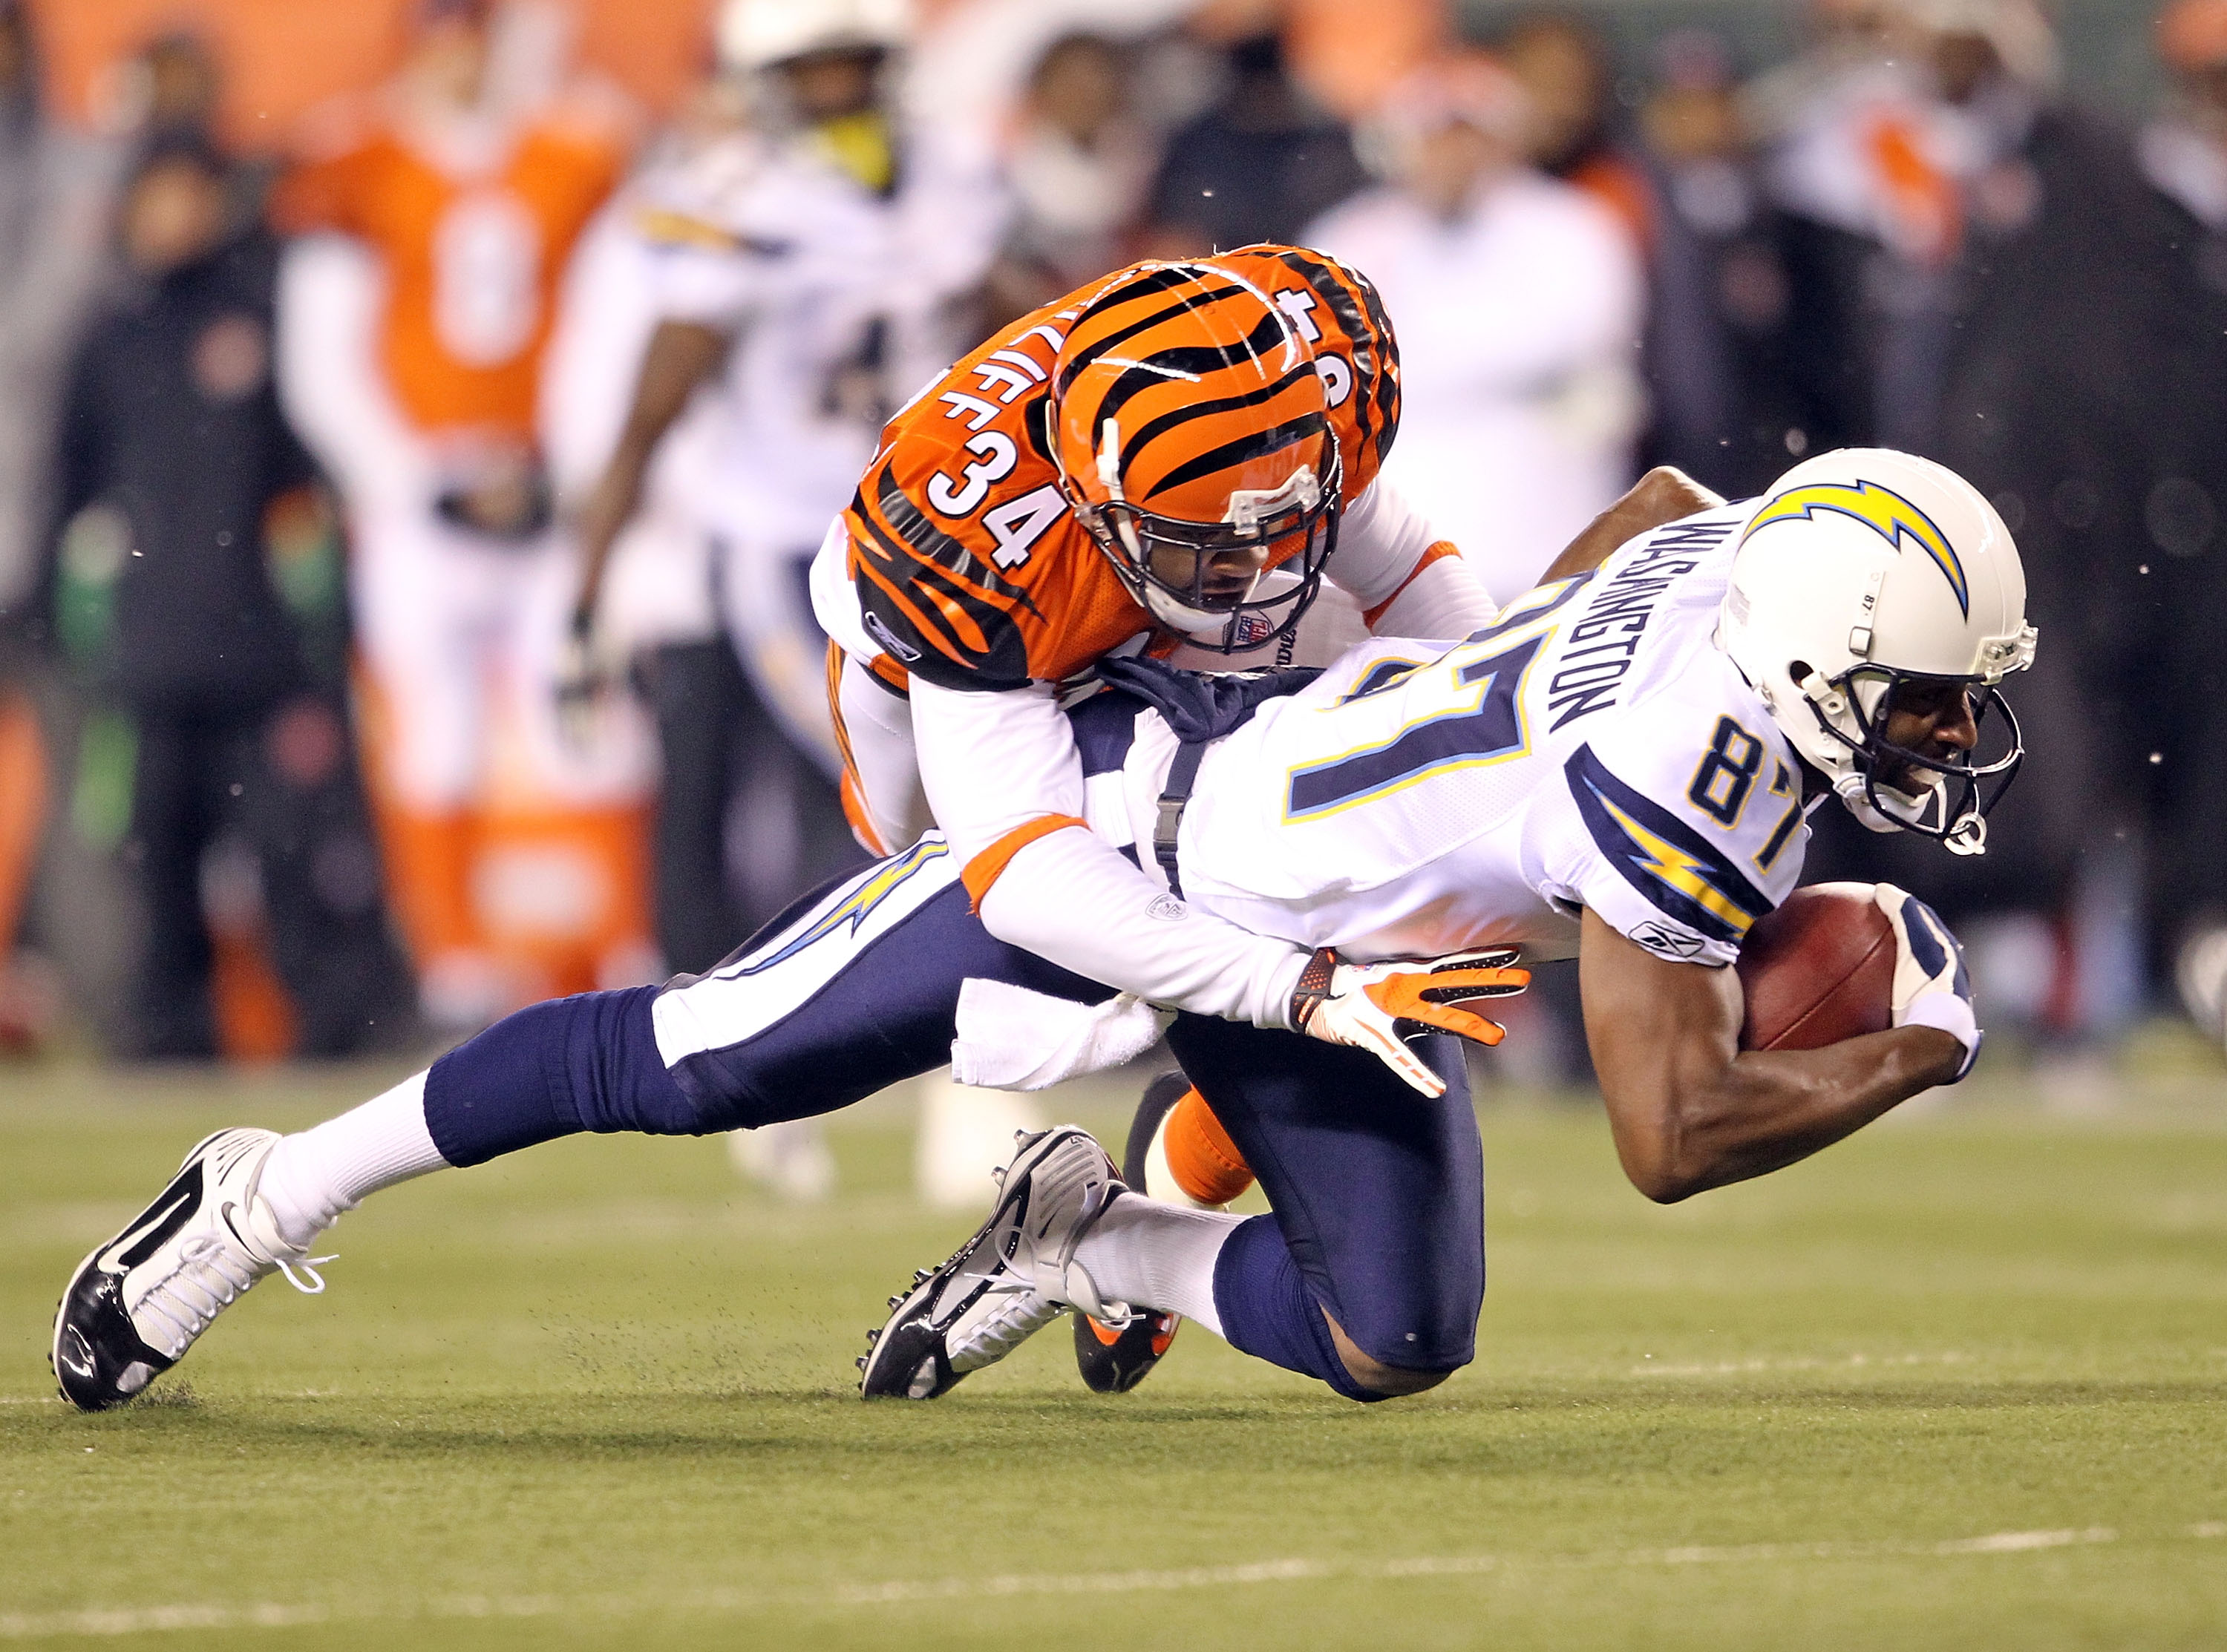 CINCINNATI - DECEMBER 26: Kelley Washington #87  of the San Diego Chargers runs with the ball while defended by Keiwan Ratliff #34 of the Cincinnati Bengals in the NFL game at Paul Brown Stadium on December 26, 2010 in Cincinnati, Ohio.  The Bengals won 3